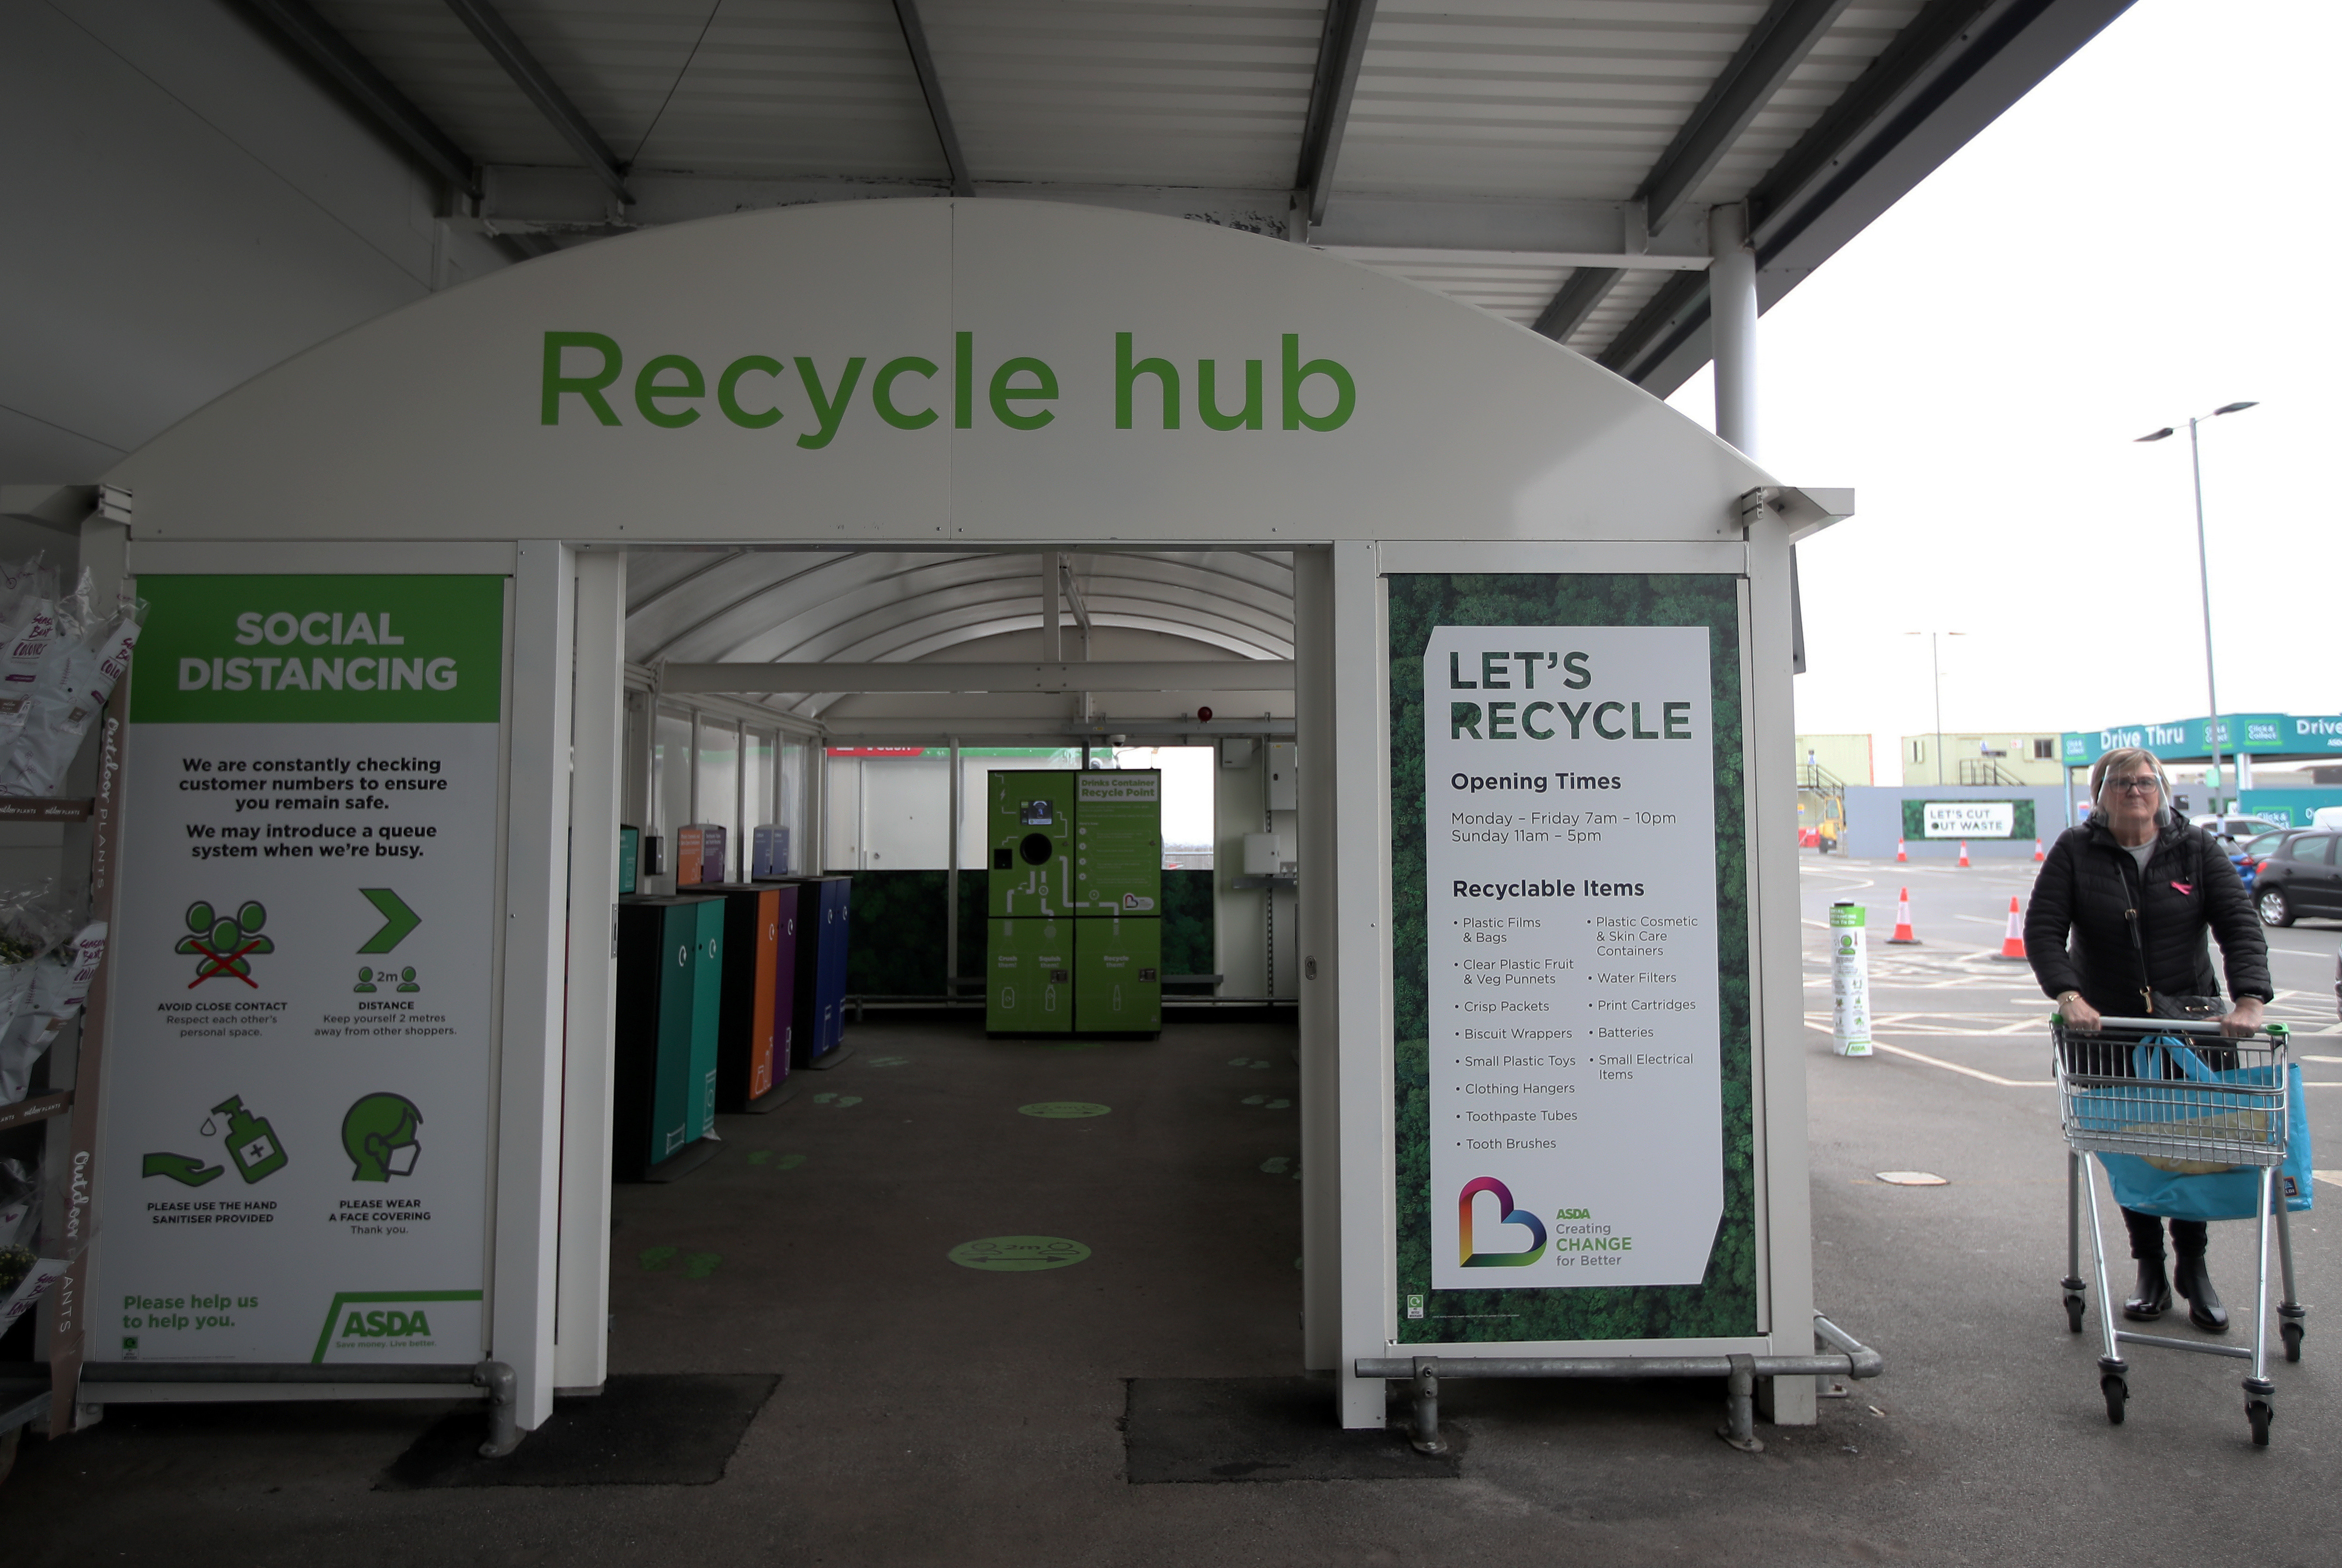 If we can recycle, can we also embrace other behaviours that will help us get to net zero?